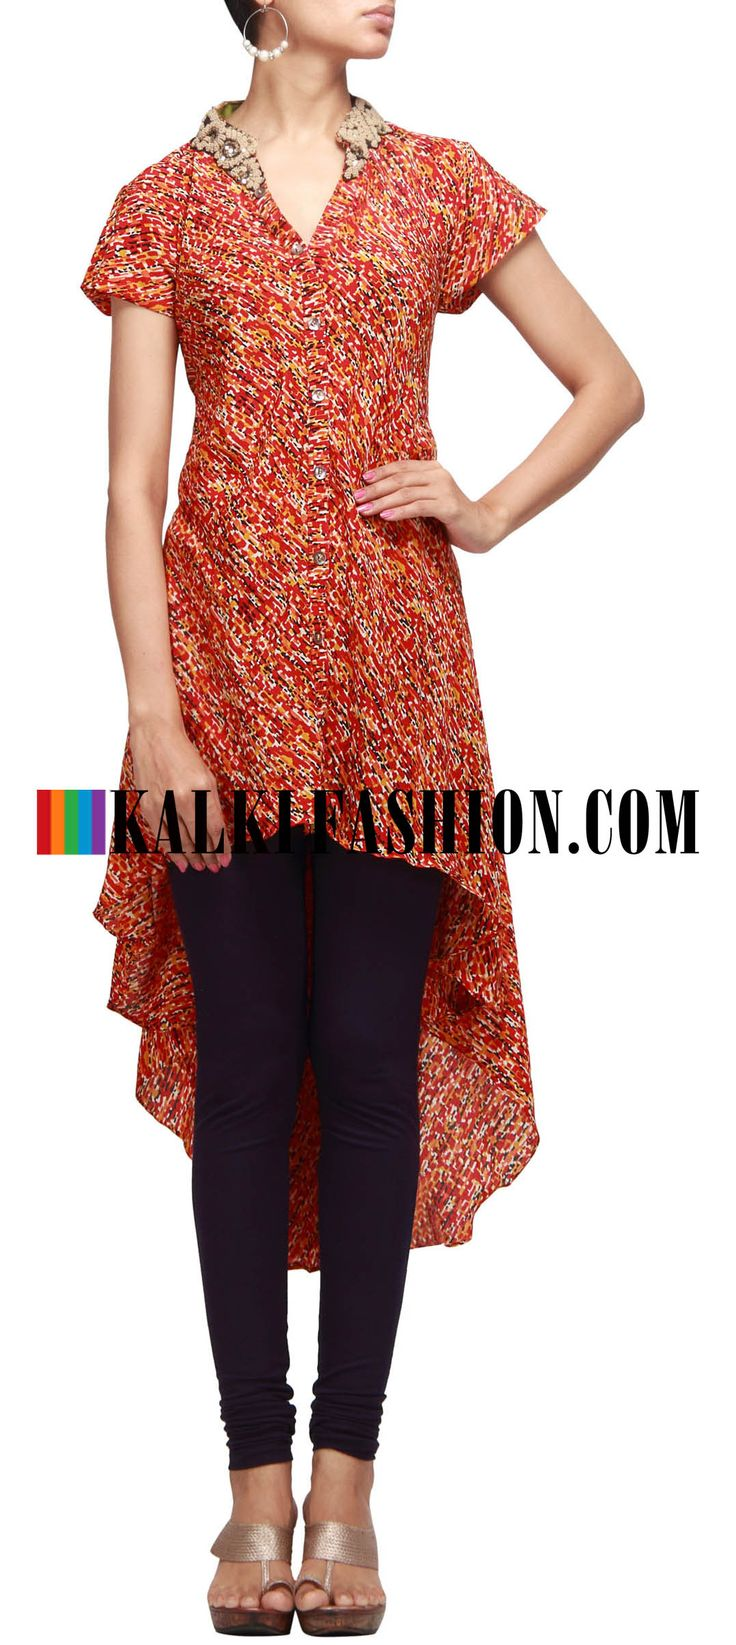 Buy Online from the link below. We ship worldwide (Free Shipping over US$100) http://www.kalkifashion.com/printed-tail-cut-kurti-with-embroidered-collar.html Printed tail cut kurti with embroidered collar